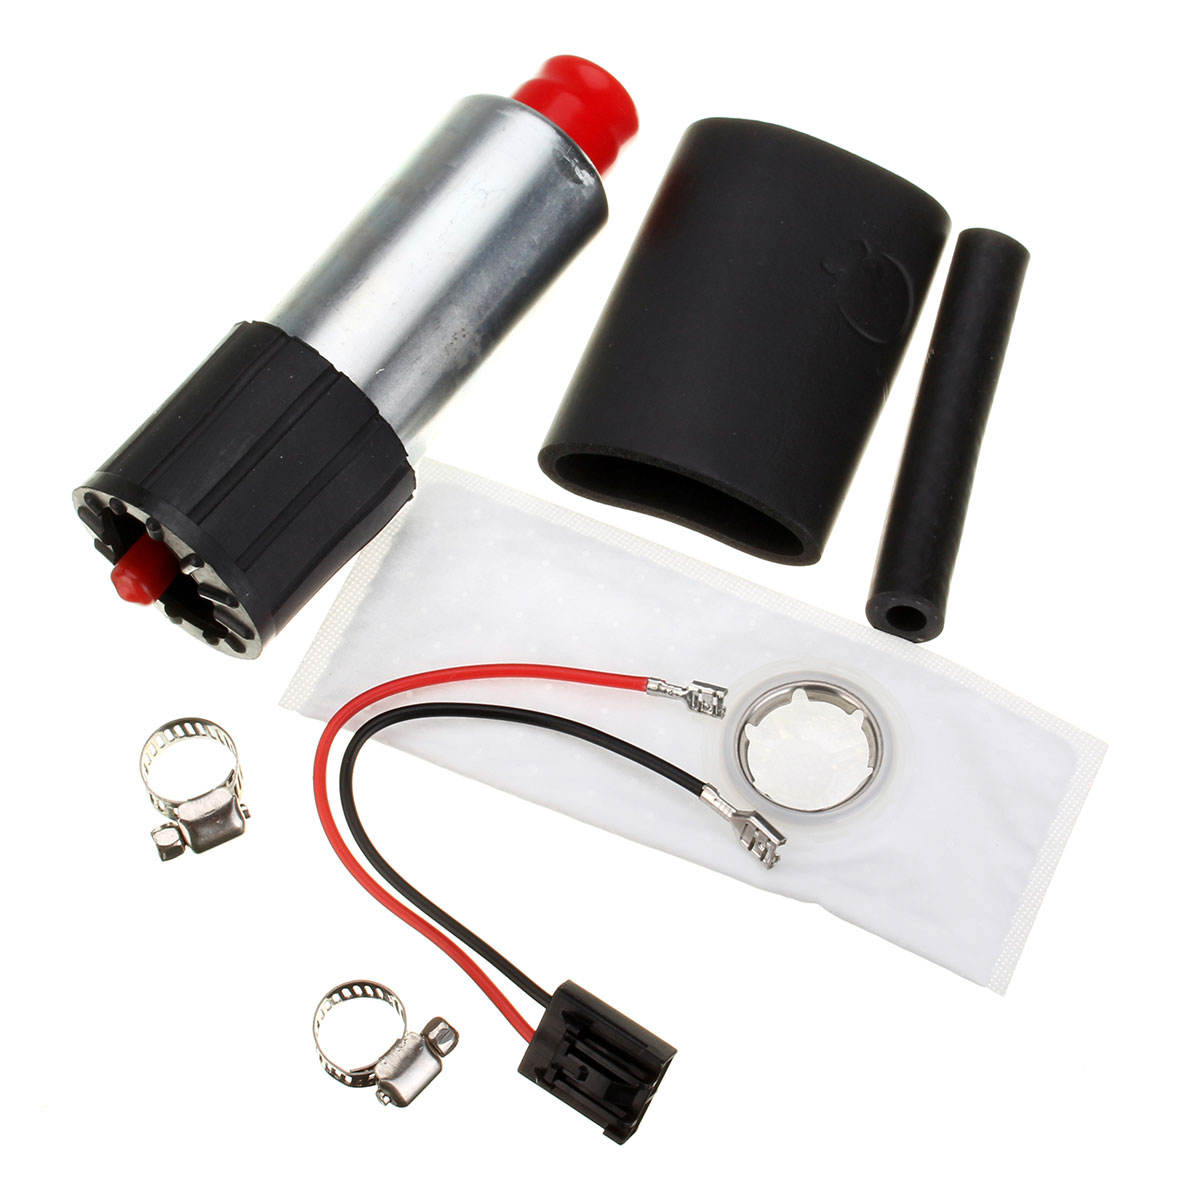 340LPH Performance Electric Fuel Pump For Racing Tuning E30 E36 E46 320i 330i M3 528i 535i X5 740i Z3 For Walbro GSS340-1